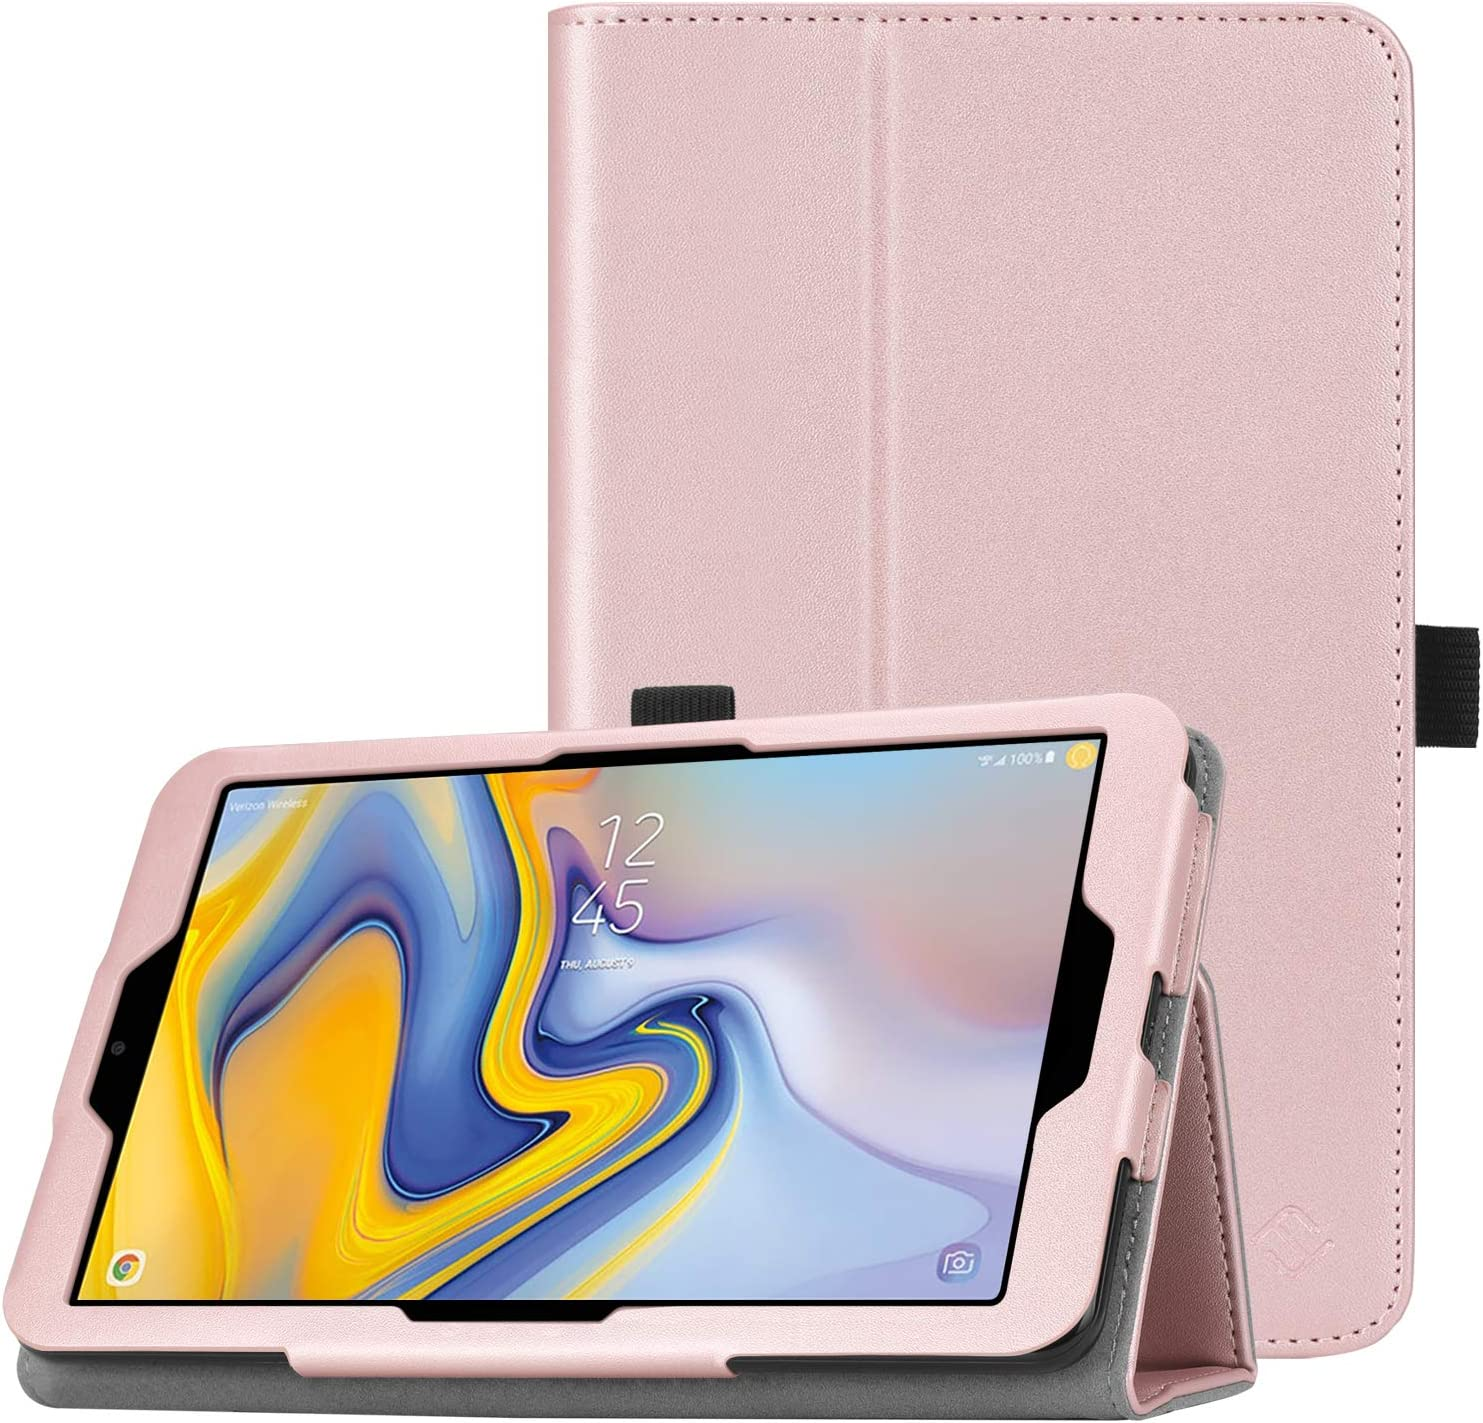 Fintie Folio Case for Samsung Galaxy Tab A 8.0 2018 Model SM-T387 Verizon/Sprint/T-Mobile/AT&T, Slim Fit Premium Vegan Leather Stand Cover, Rose Gold